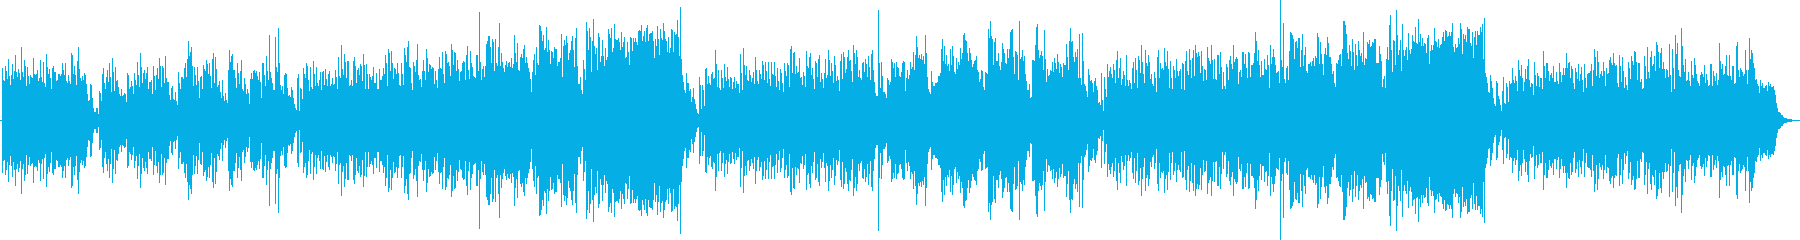 A song like the wind that blows through the Champs Elysees's reproduced waveform